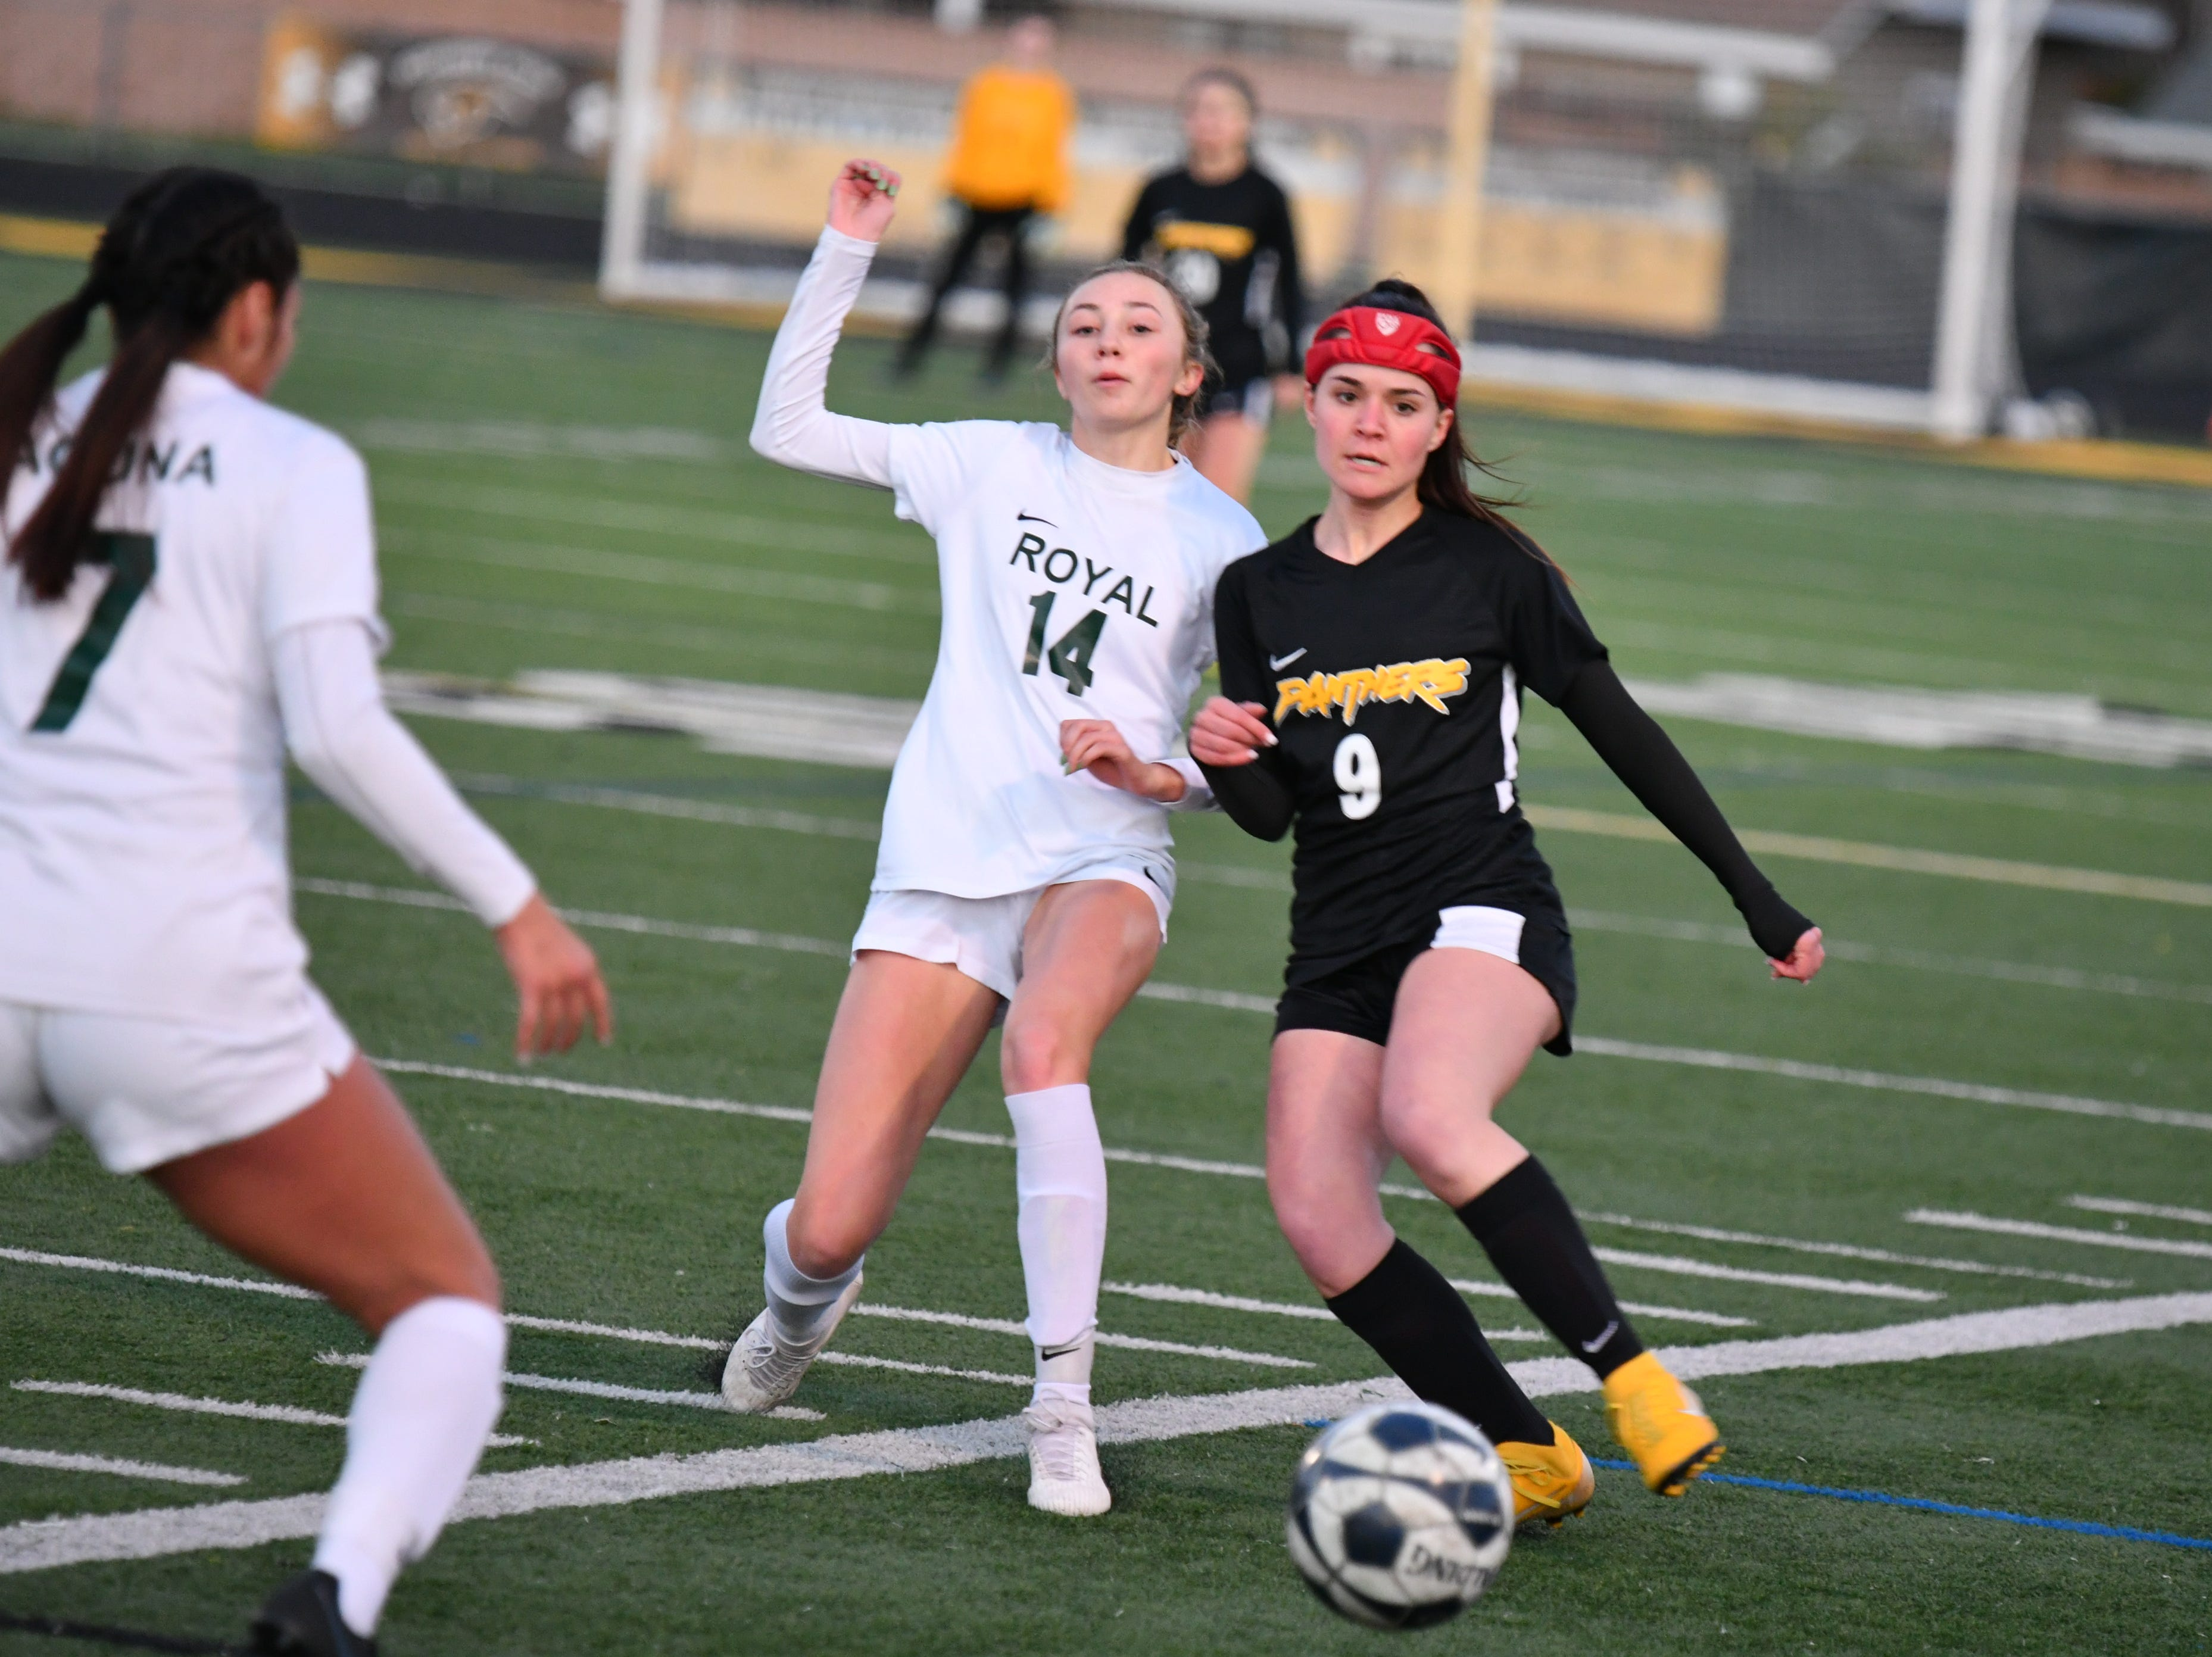 Royal's Grace Nilsen, left, and Newbury Park's Claudia Diliberti battle for possession on Wednesday in the first round of the CIF-Southern Section Division 2 playoffs at Newbury Park High. Newbury Park won, 3-0.